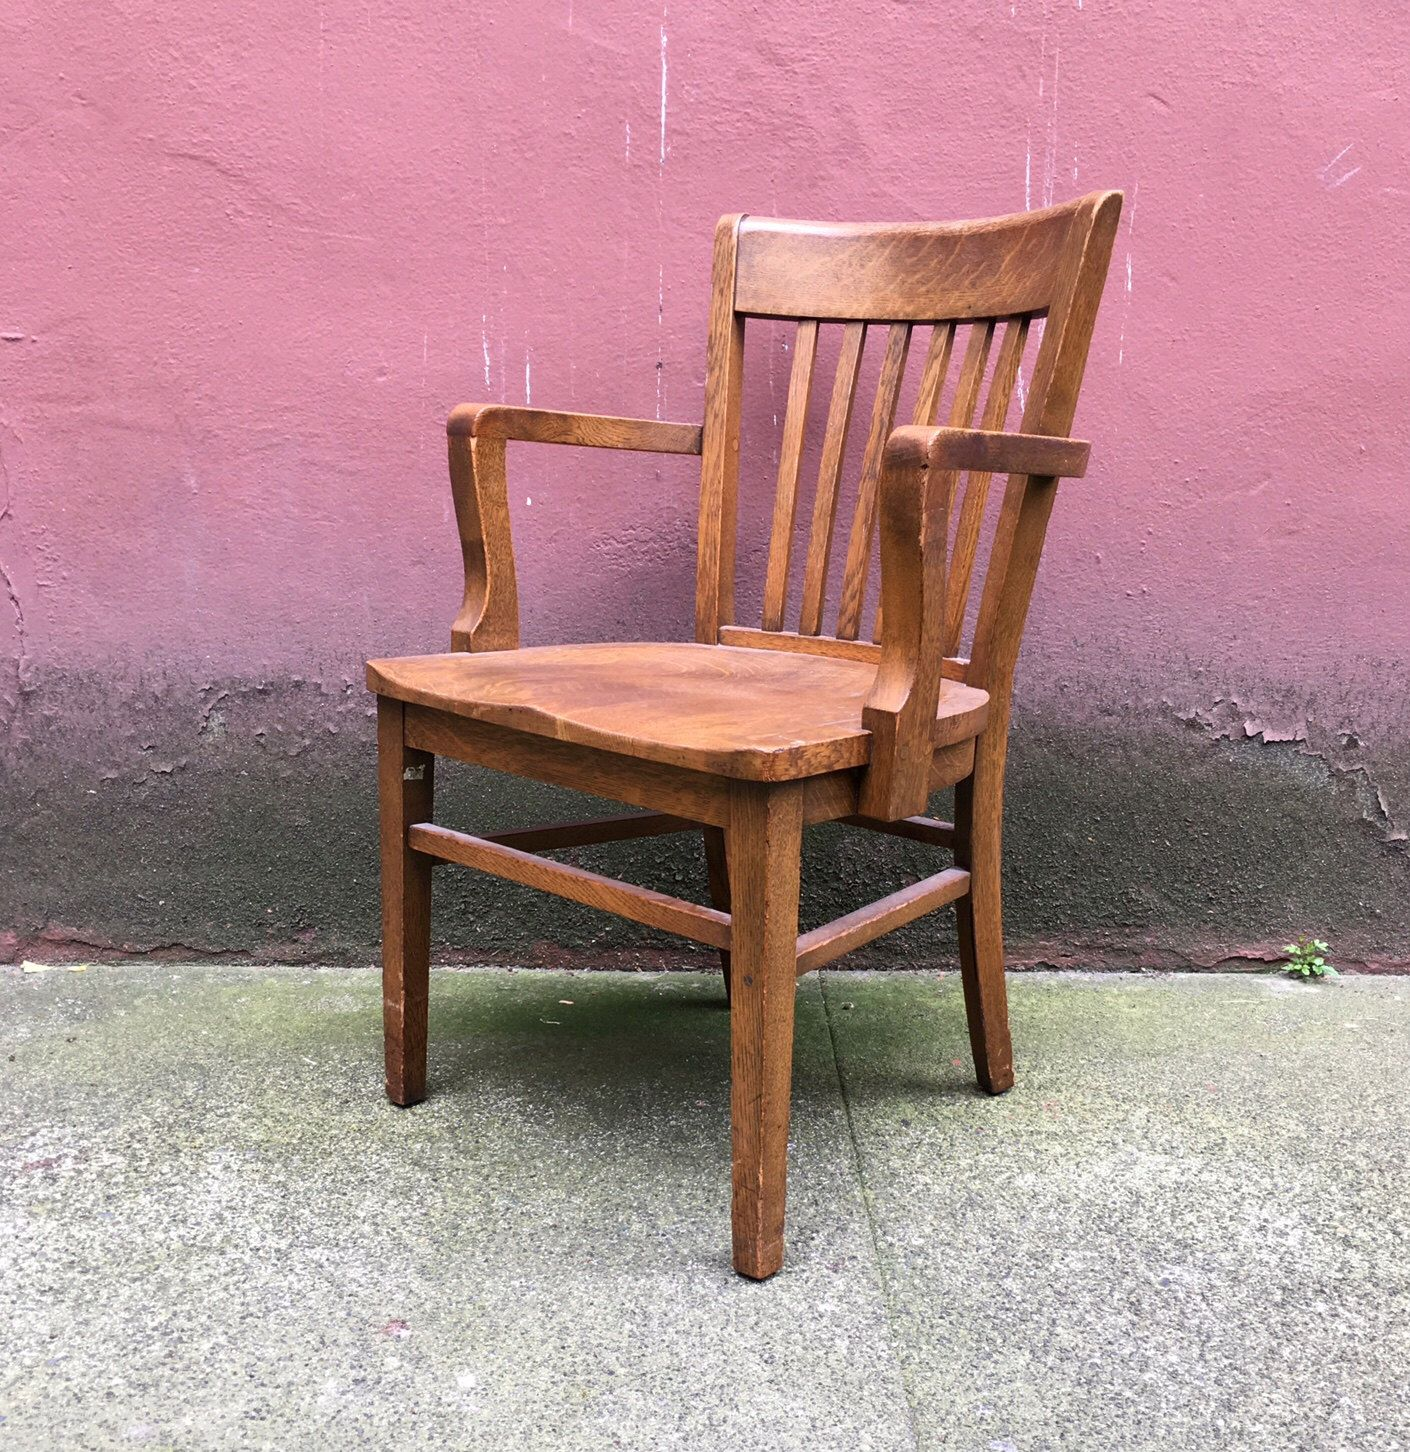 vintage oak banker s chair by Marble & Shattuck Chair Co retro